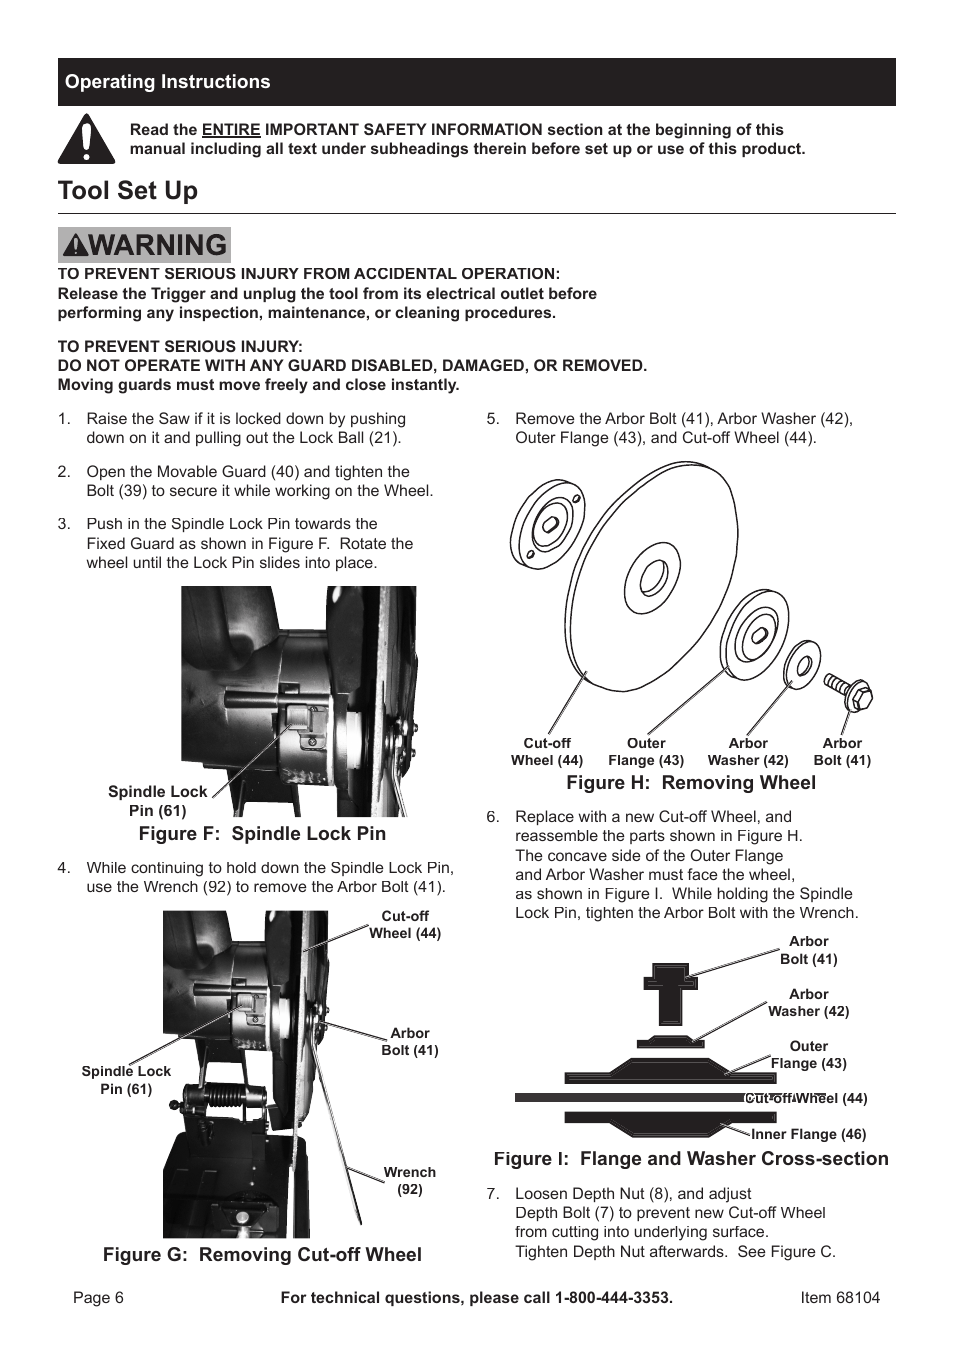 Tool set up, Operating instructions, Figure f: spindle